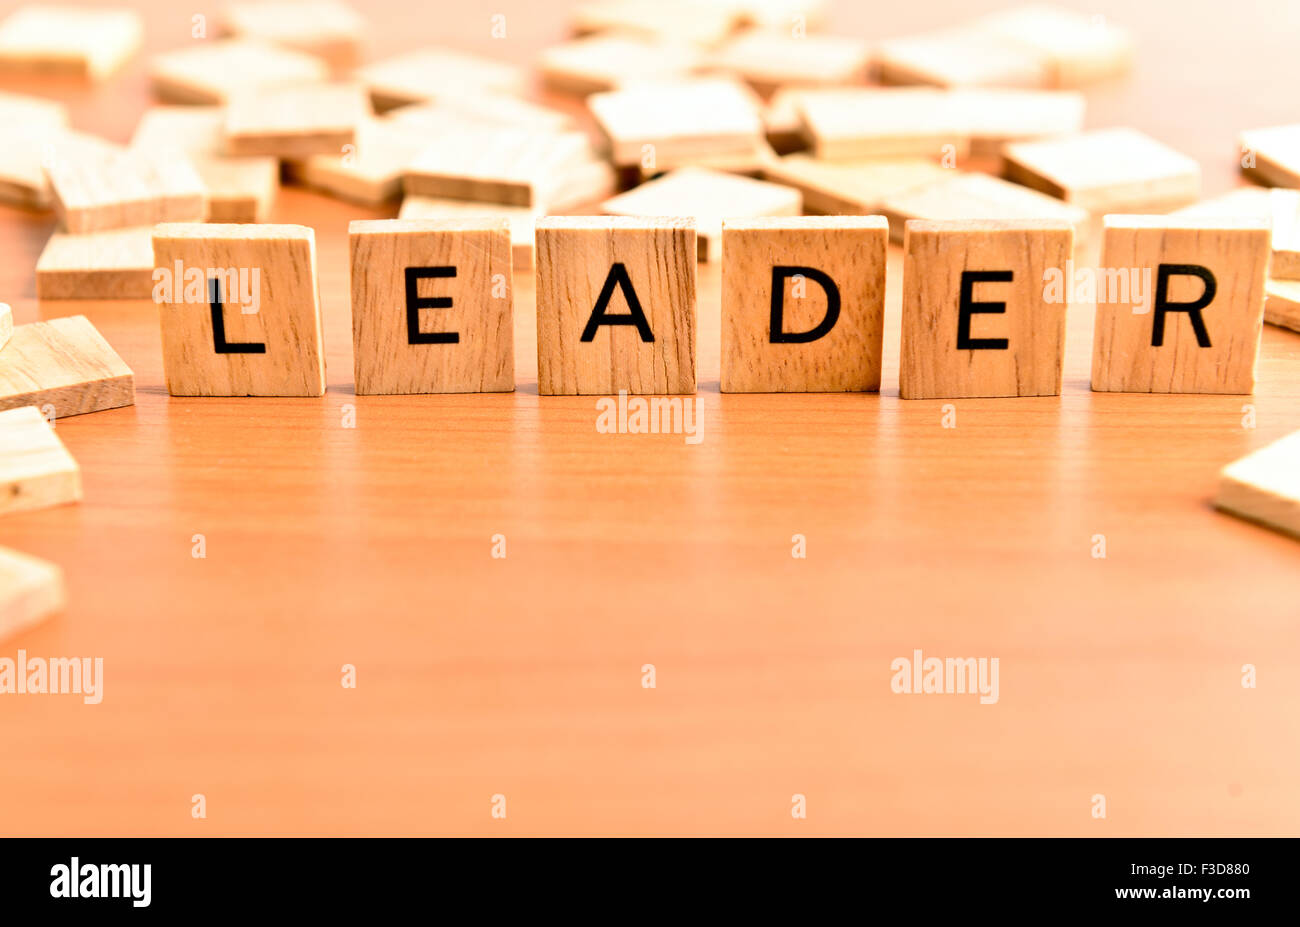 Leader conceptual text on wooden tiles - Stock Image